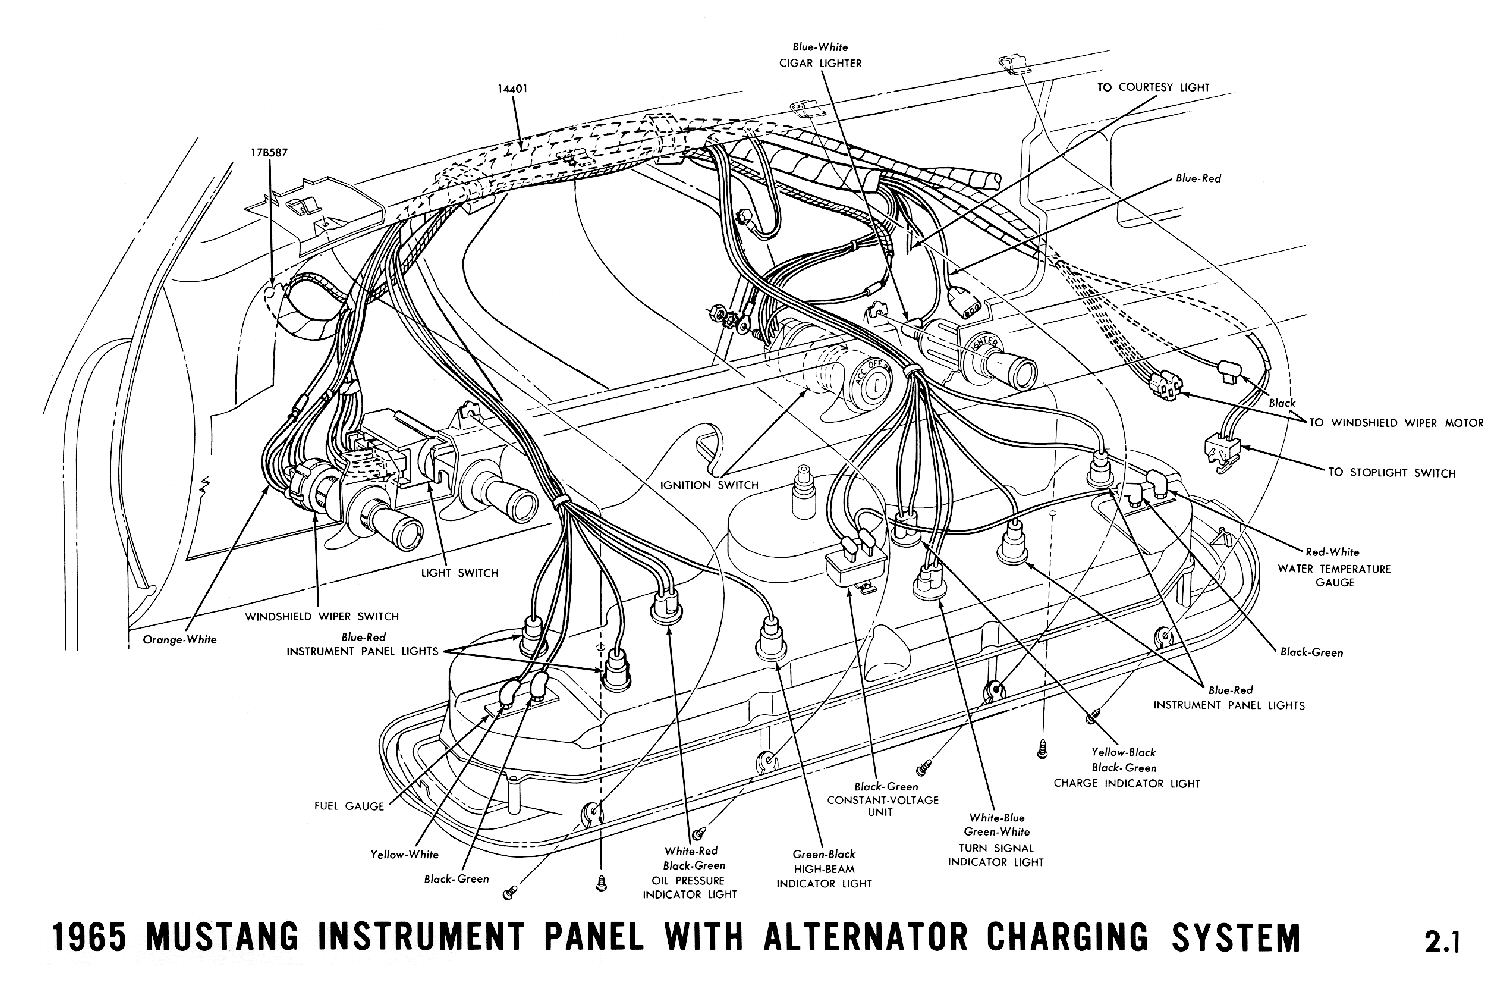 dakota cluster wiring diagram with 678697 65 Mustang Turn Signal Problem on 1978 El Camino Dash Board besides 4l60e Transmission Plug Wiring Diagram as well 2qha0 2004 Dodge Neon Codes P0700 Trans Sys Circuit Malfunction further Why Wont My Windshield Washer Work further 678697 65 Mustang Turn Signal Problem.